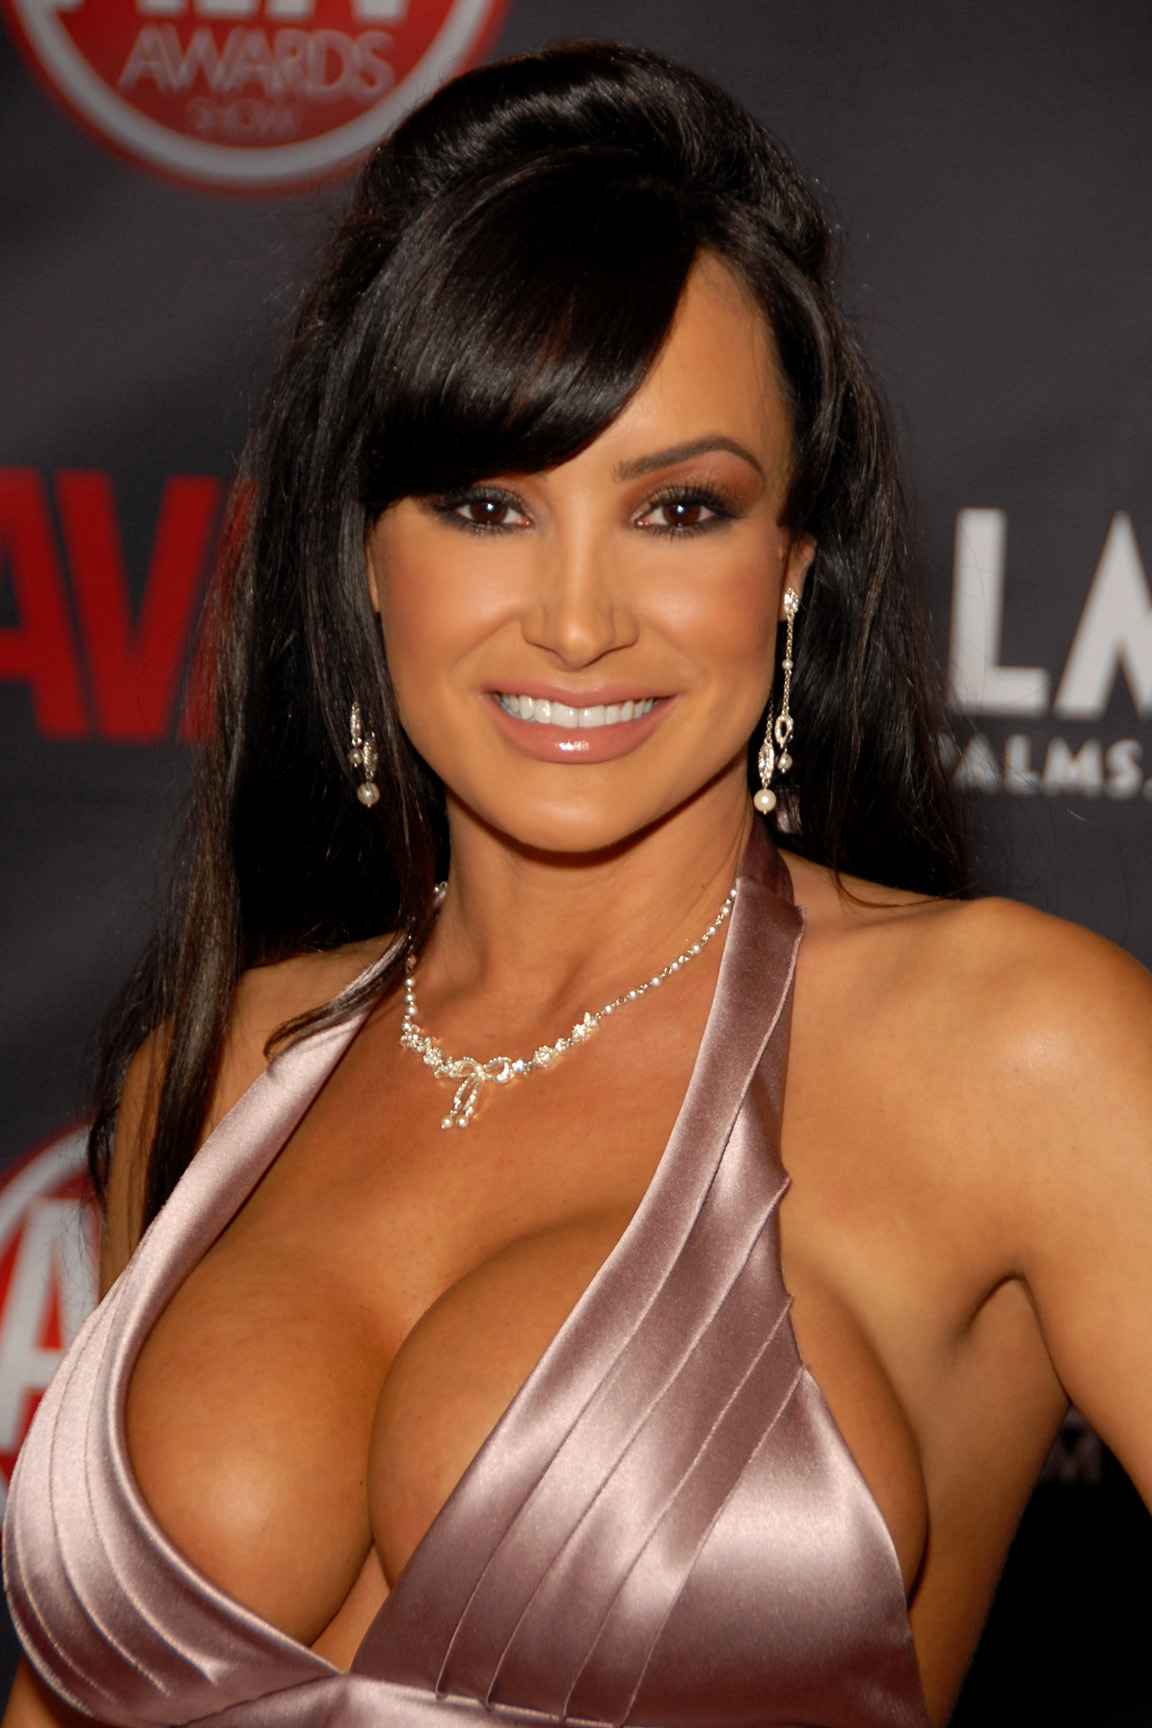 lisa ann porno top 10 pornstar